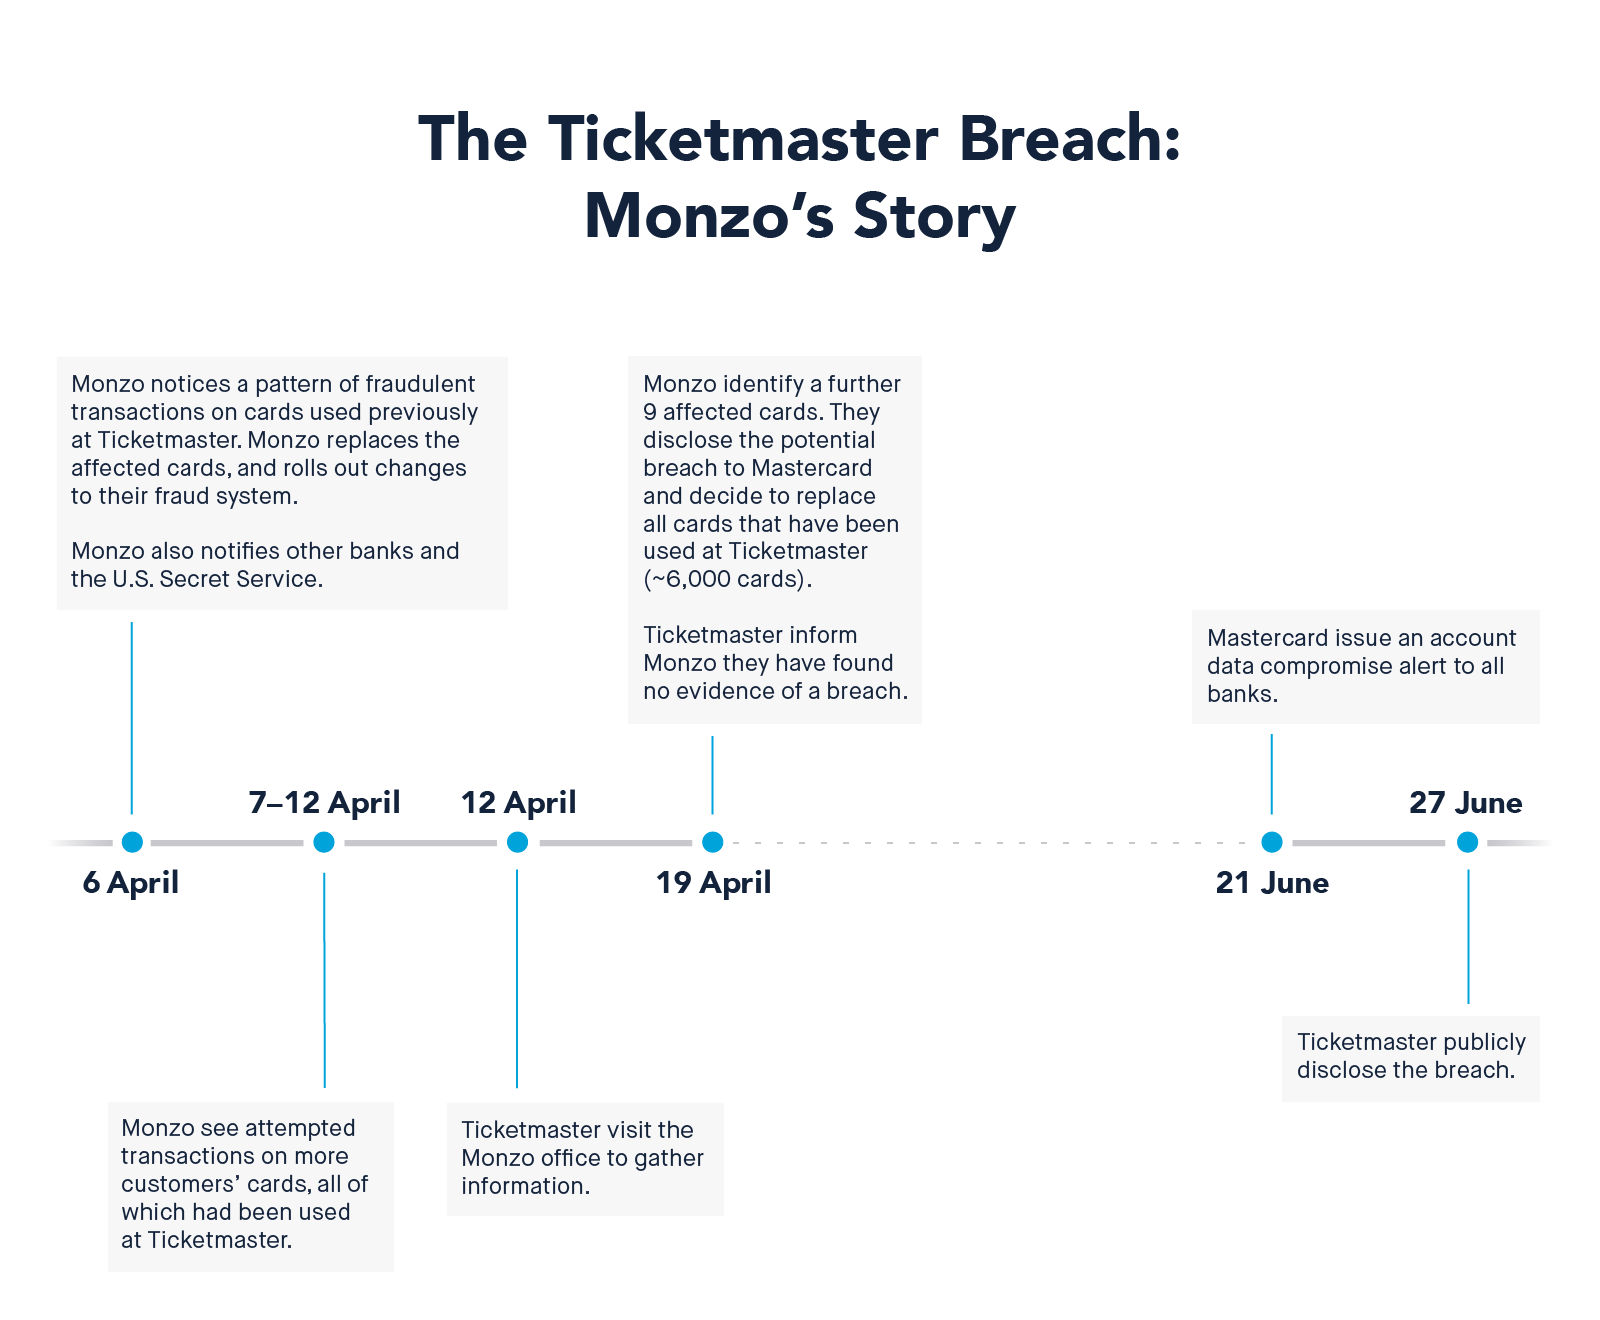 Image for 'How Monzo uncovered the Ticketmaster data breach & what they did next'